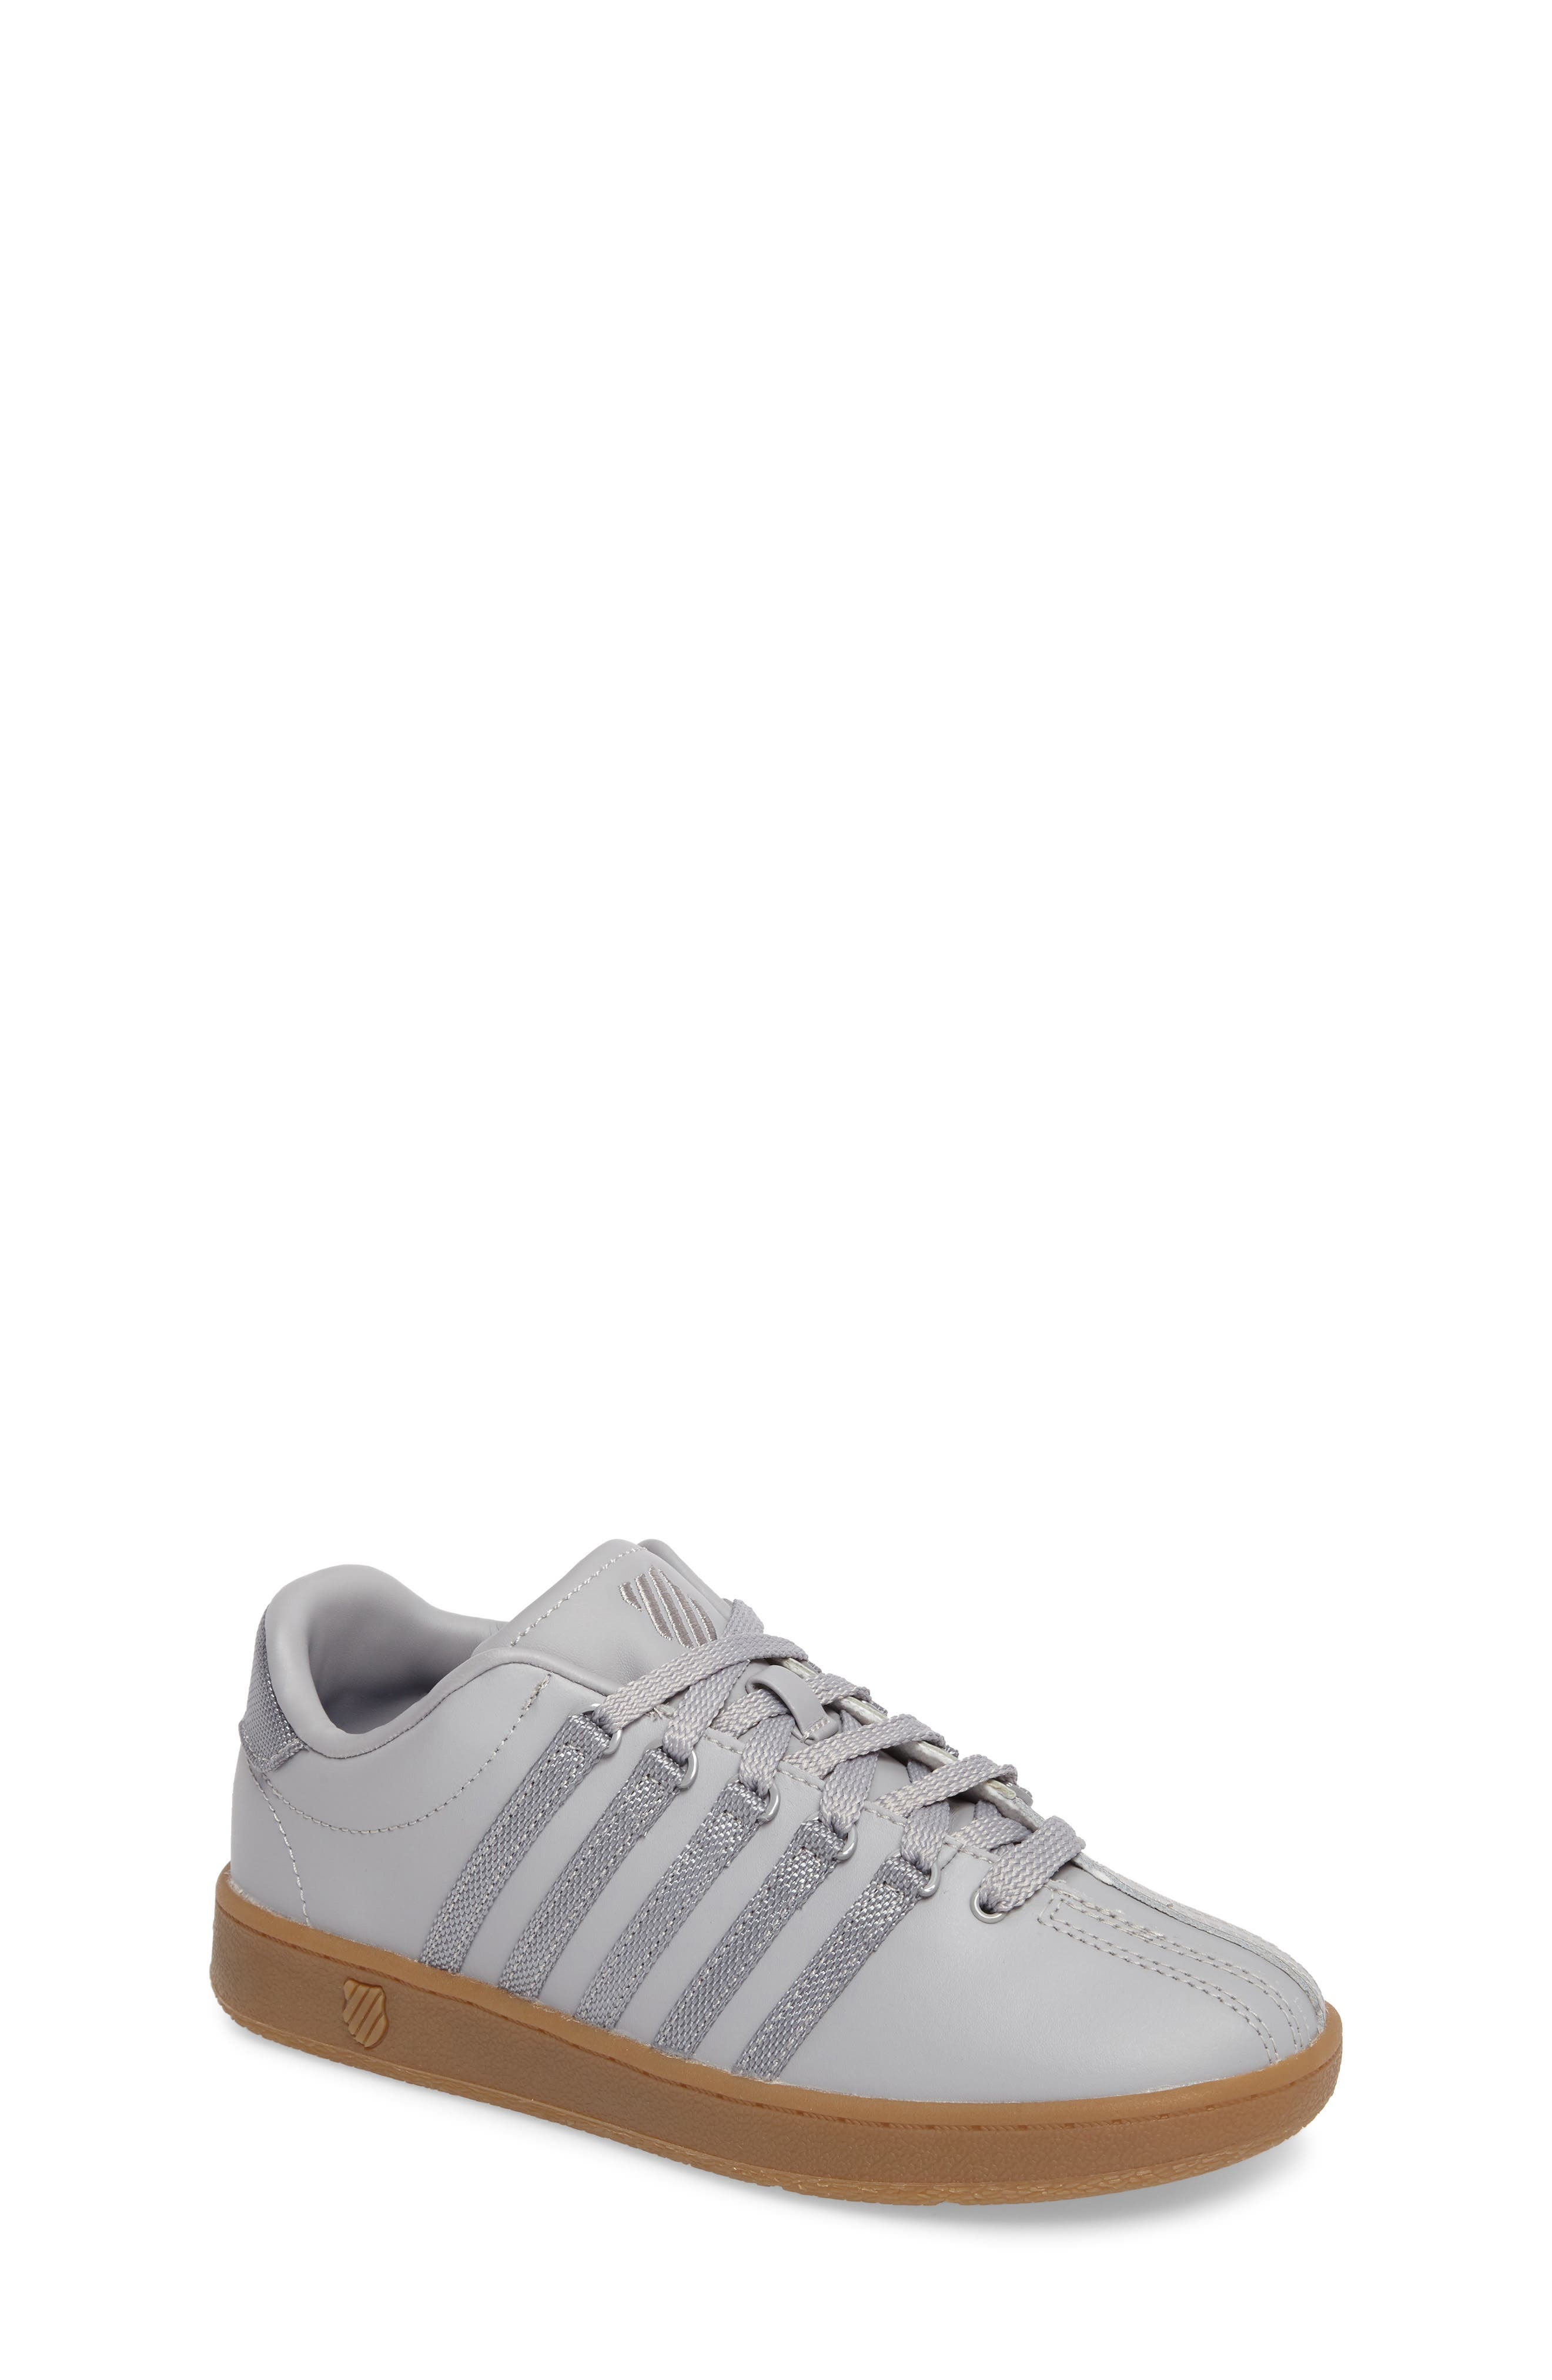 'Classic' Sneaker,                             Main thumbnail 1, color,                             Gray